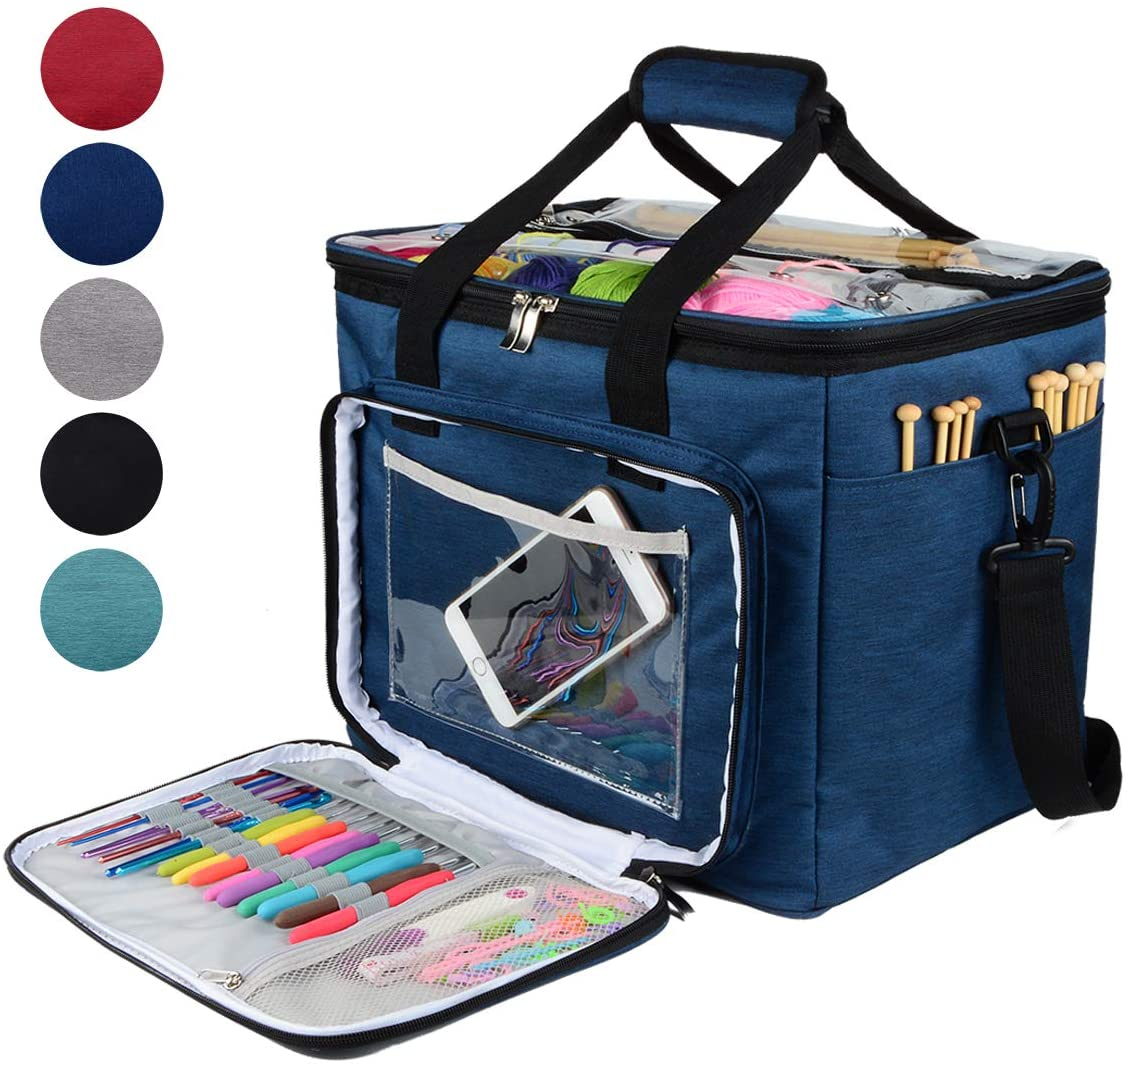 """Hoshin Knitting Bag for Yarn Storage, High Capacity Yarn Totes Organizer with Inner Divider Portable for Carrying Project, Knitting Needles(up to 14""""), Crochet Hooks, Skeins of Yarn (Navy)"""